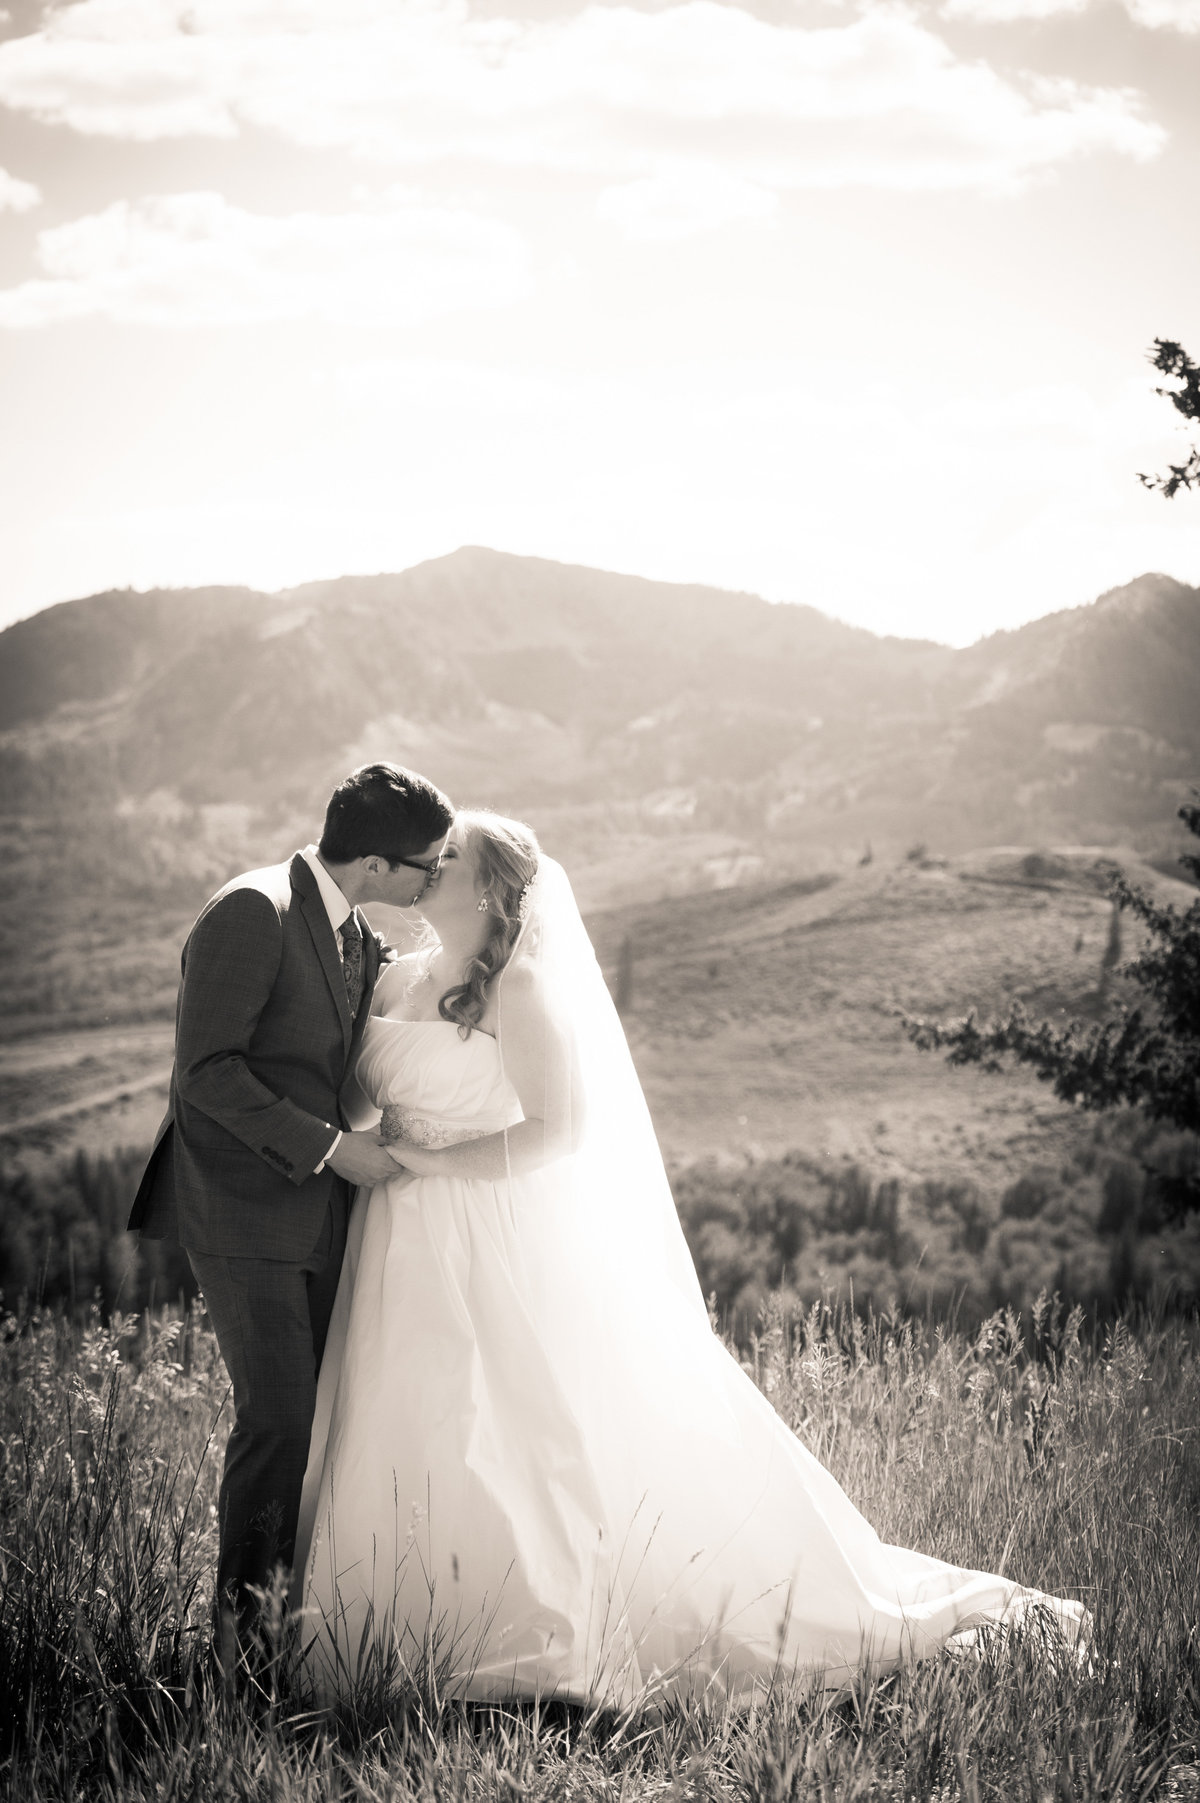 Park City, Utah, couple kisses against mountain background, just married.